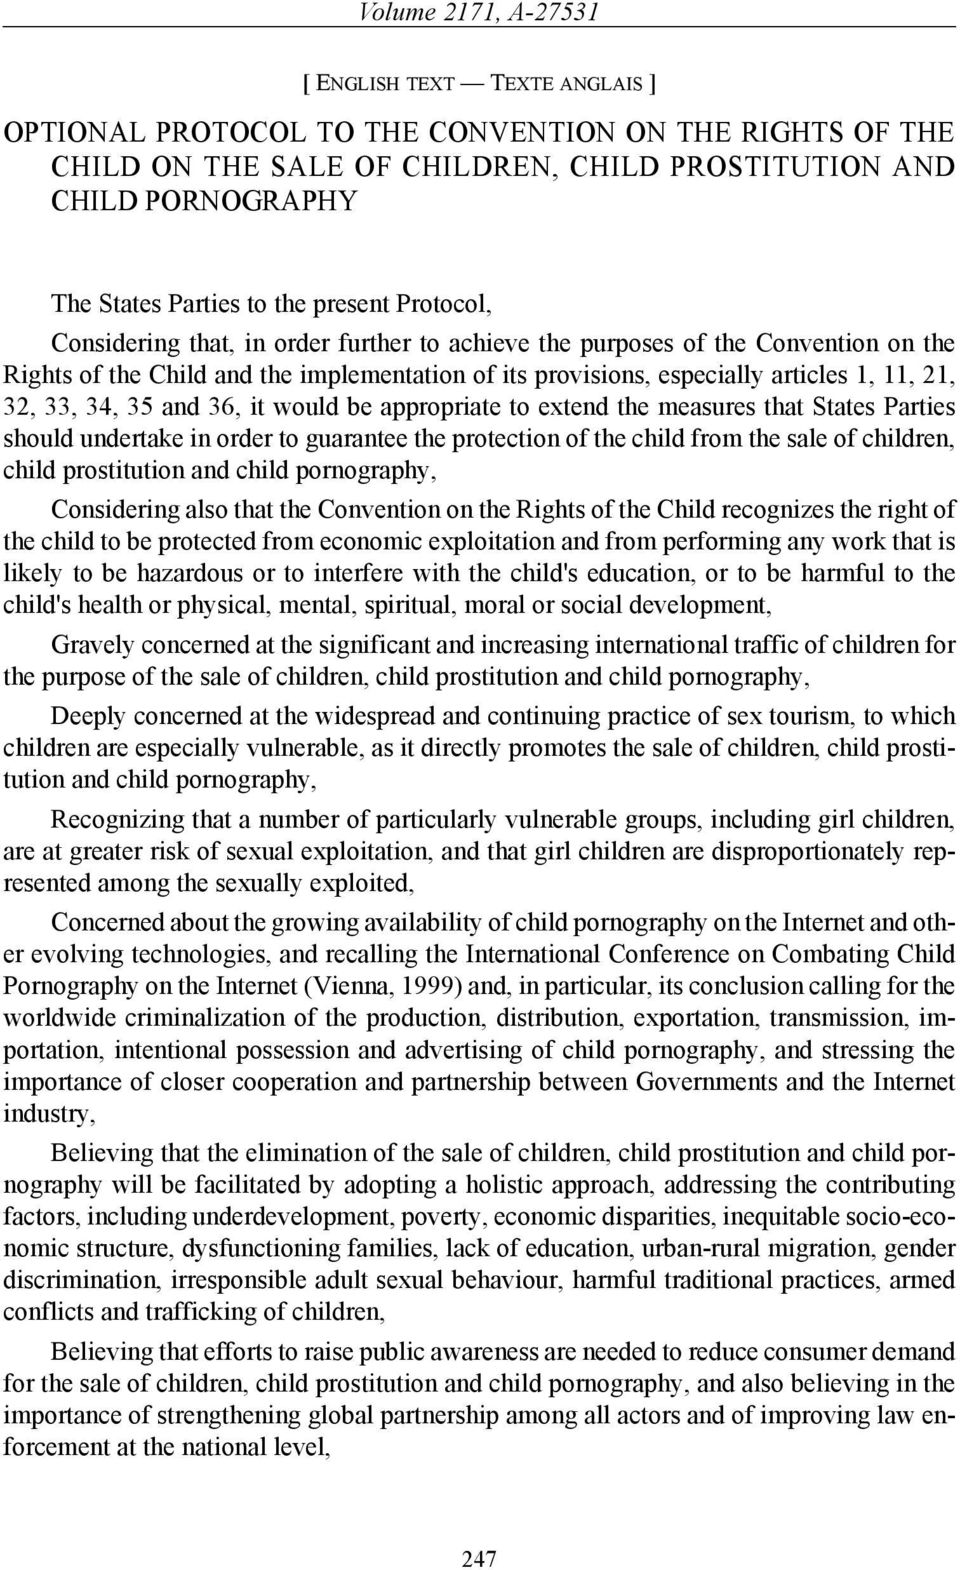 35 and 36, it would be appropriate to extend the measures that States Parties should undertake in order to guarantee the protection of the child from the sale of children, child prostitution and